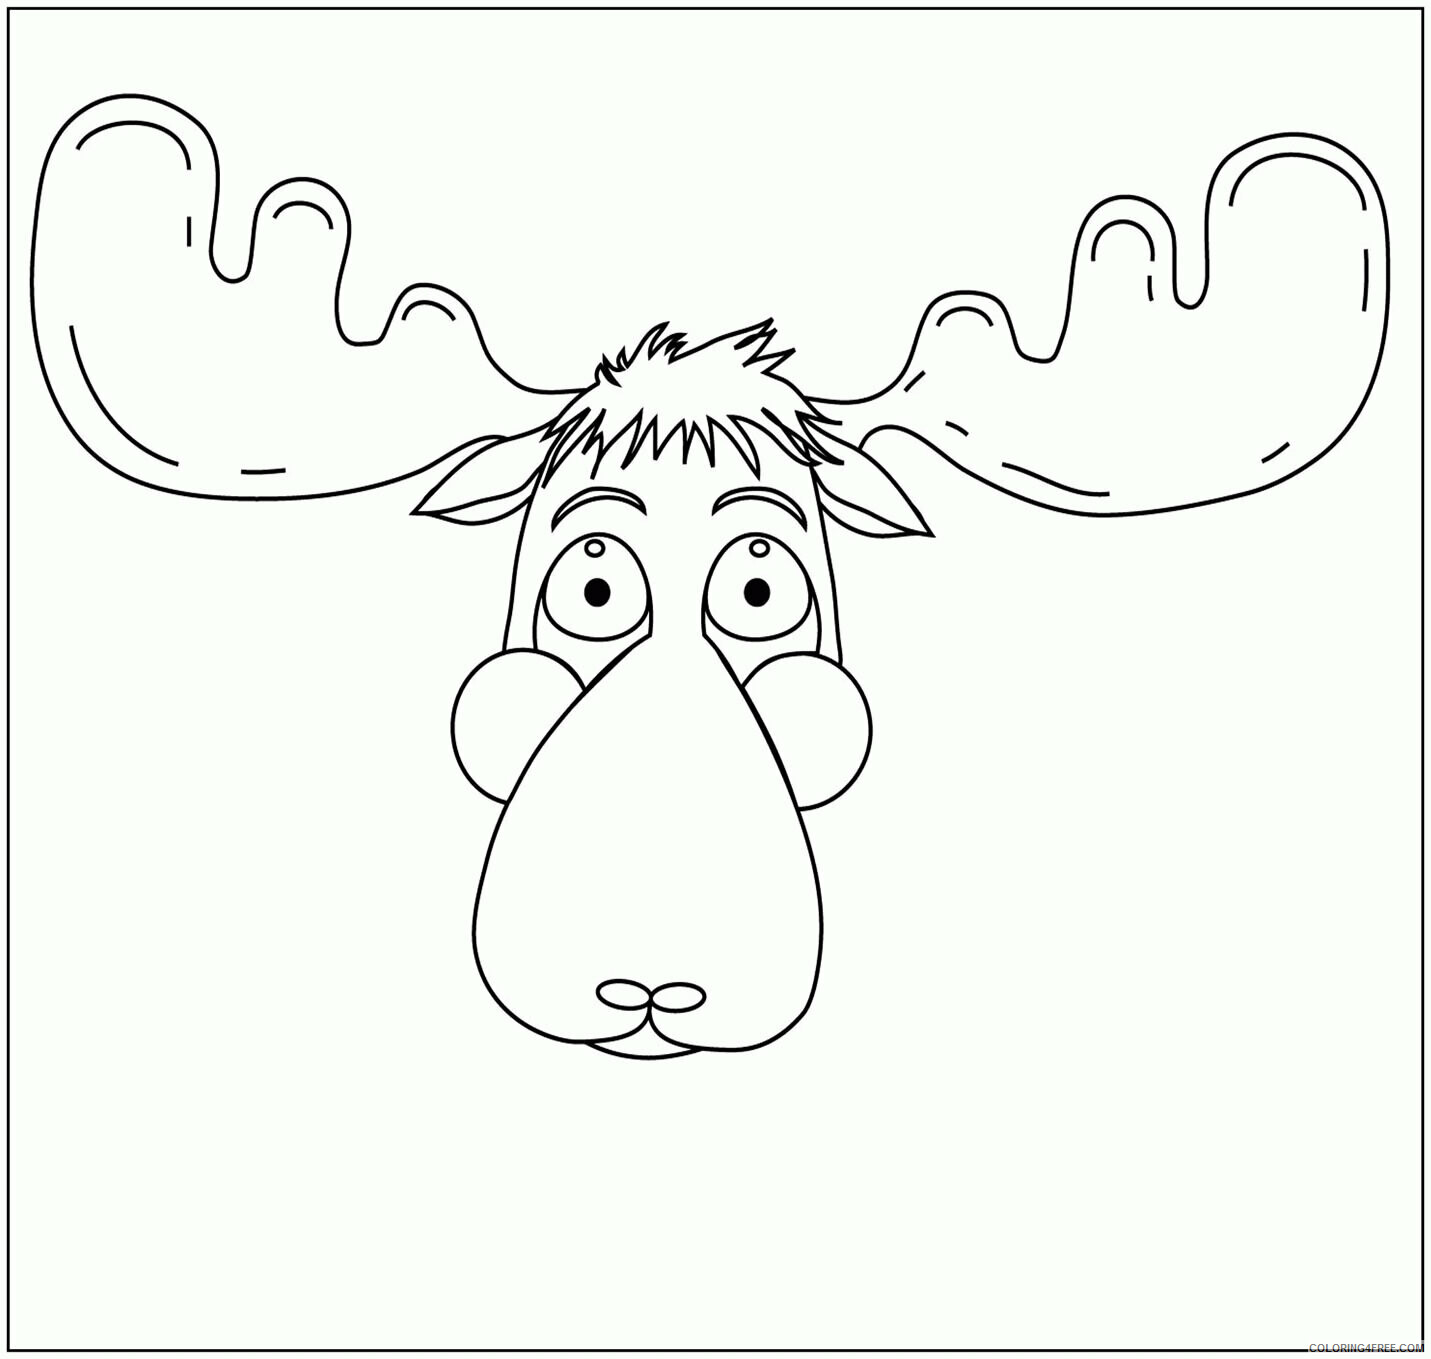 Moose Coloring Sheets Animal Coloring Pages Printable 2021 2901 Coloring4free